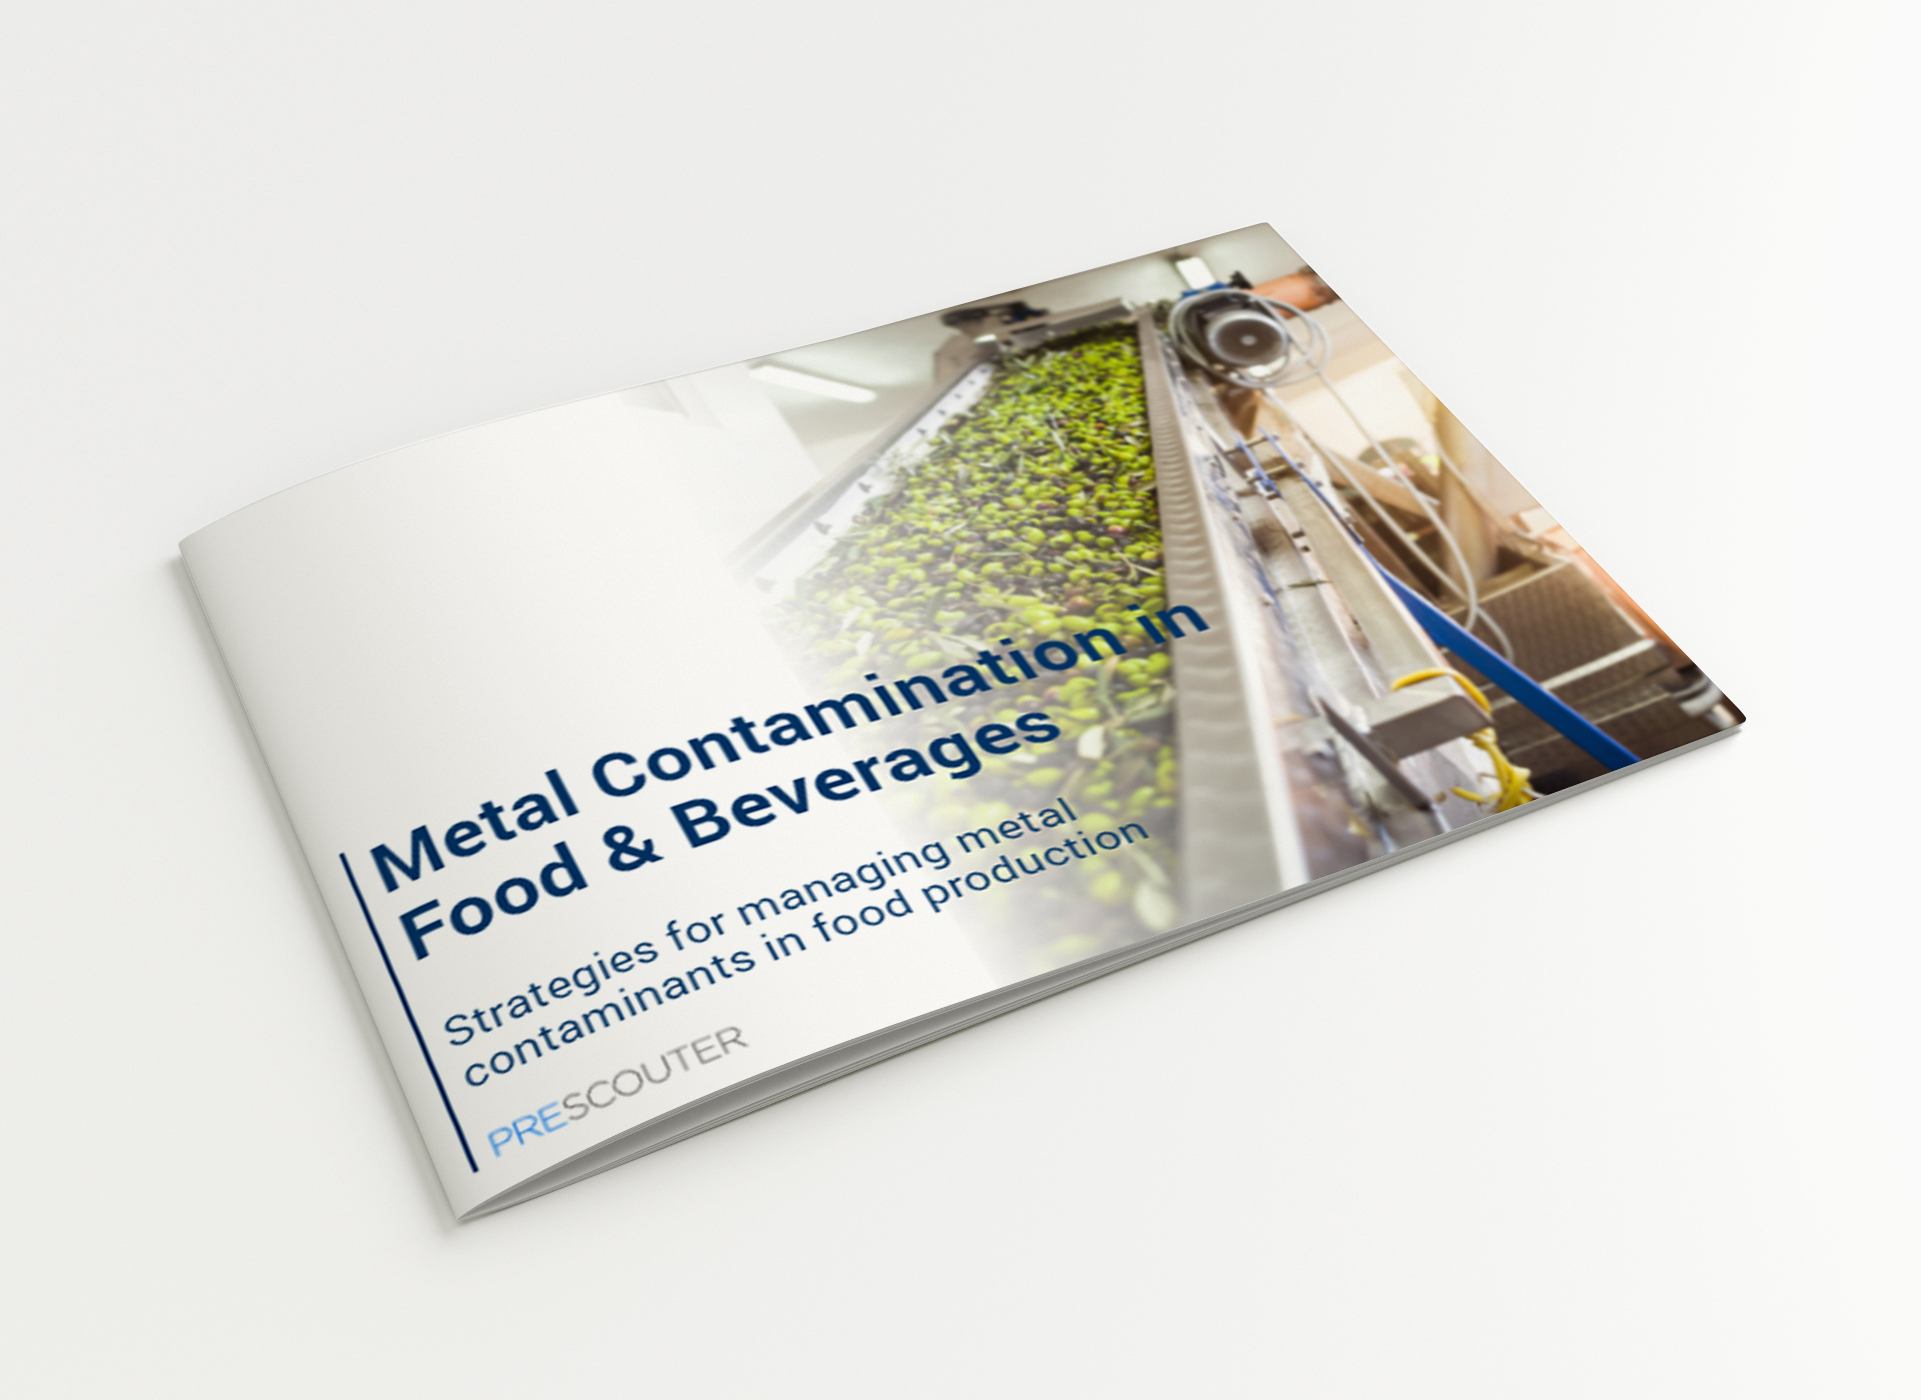 Metal Contamination in Food & Beverages: Strategies for Managing Metal Contaminants in Food Production